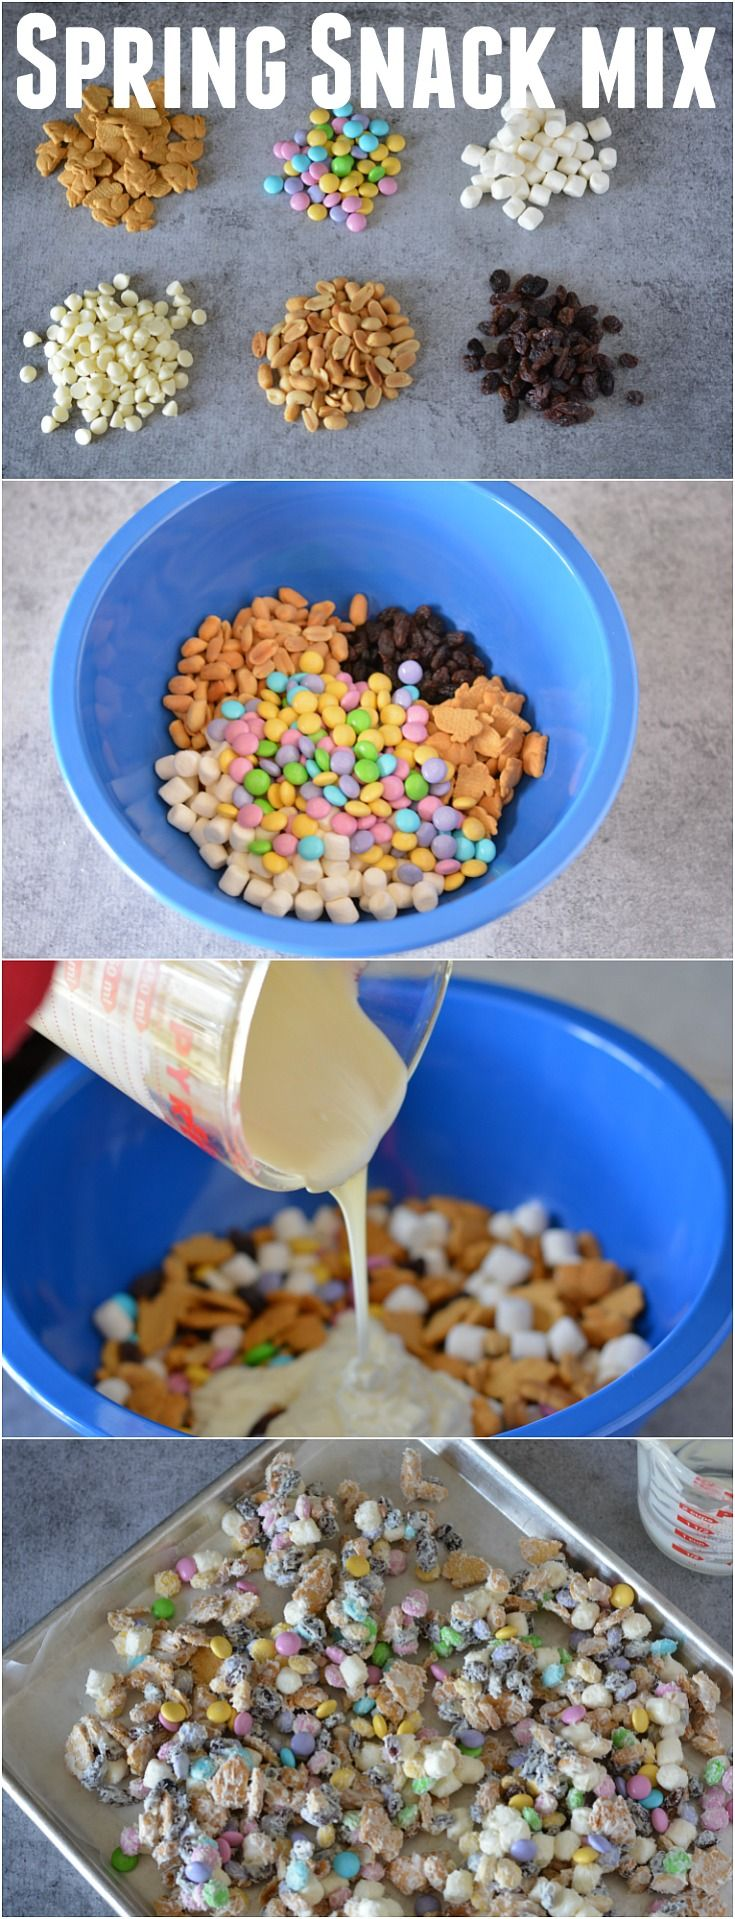 Whip up this Spring Snack Mix in minutes! Add it to bags with the FREE Printables for a quick and easy gift! Make a batch of Bunny Bait for Easter or take to a party!